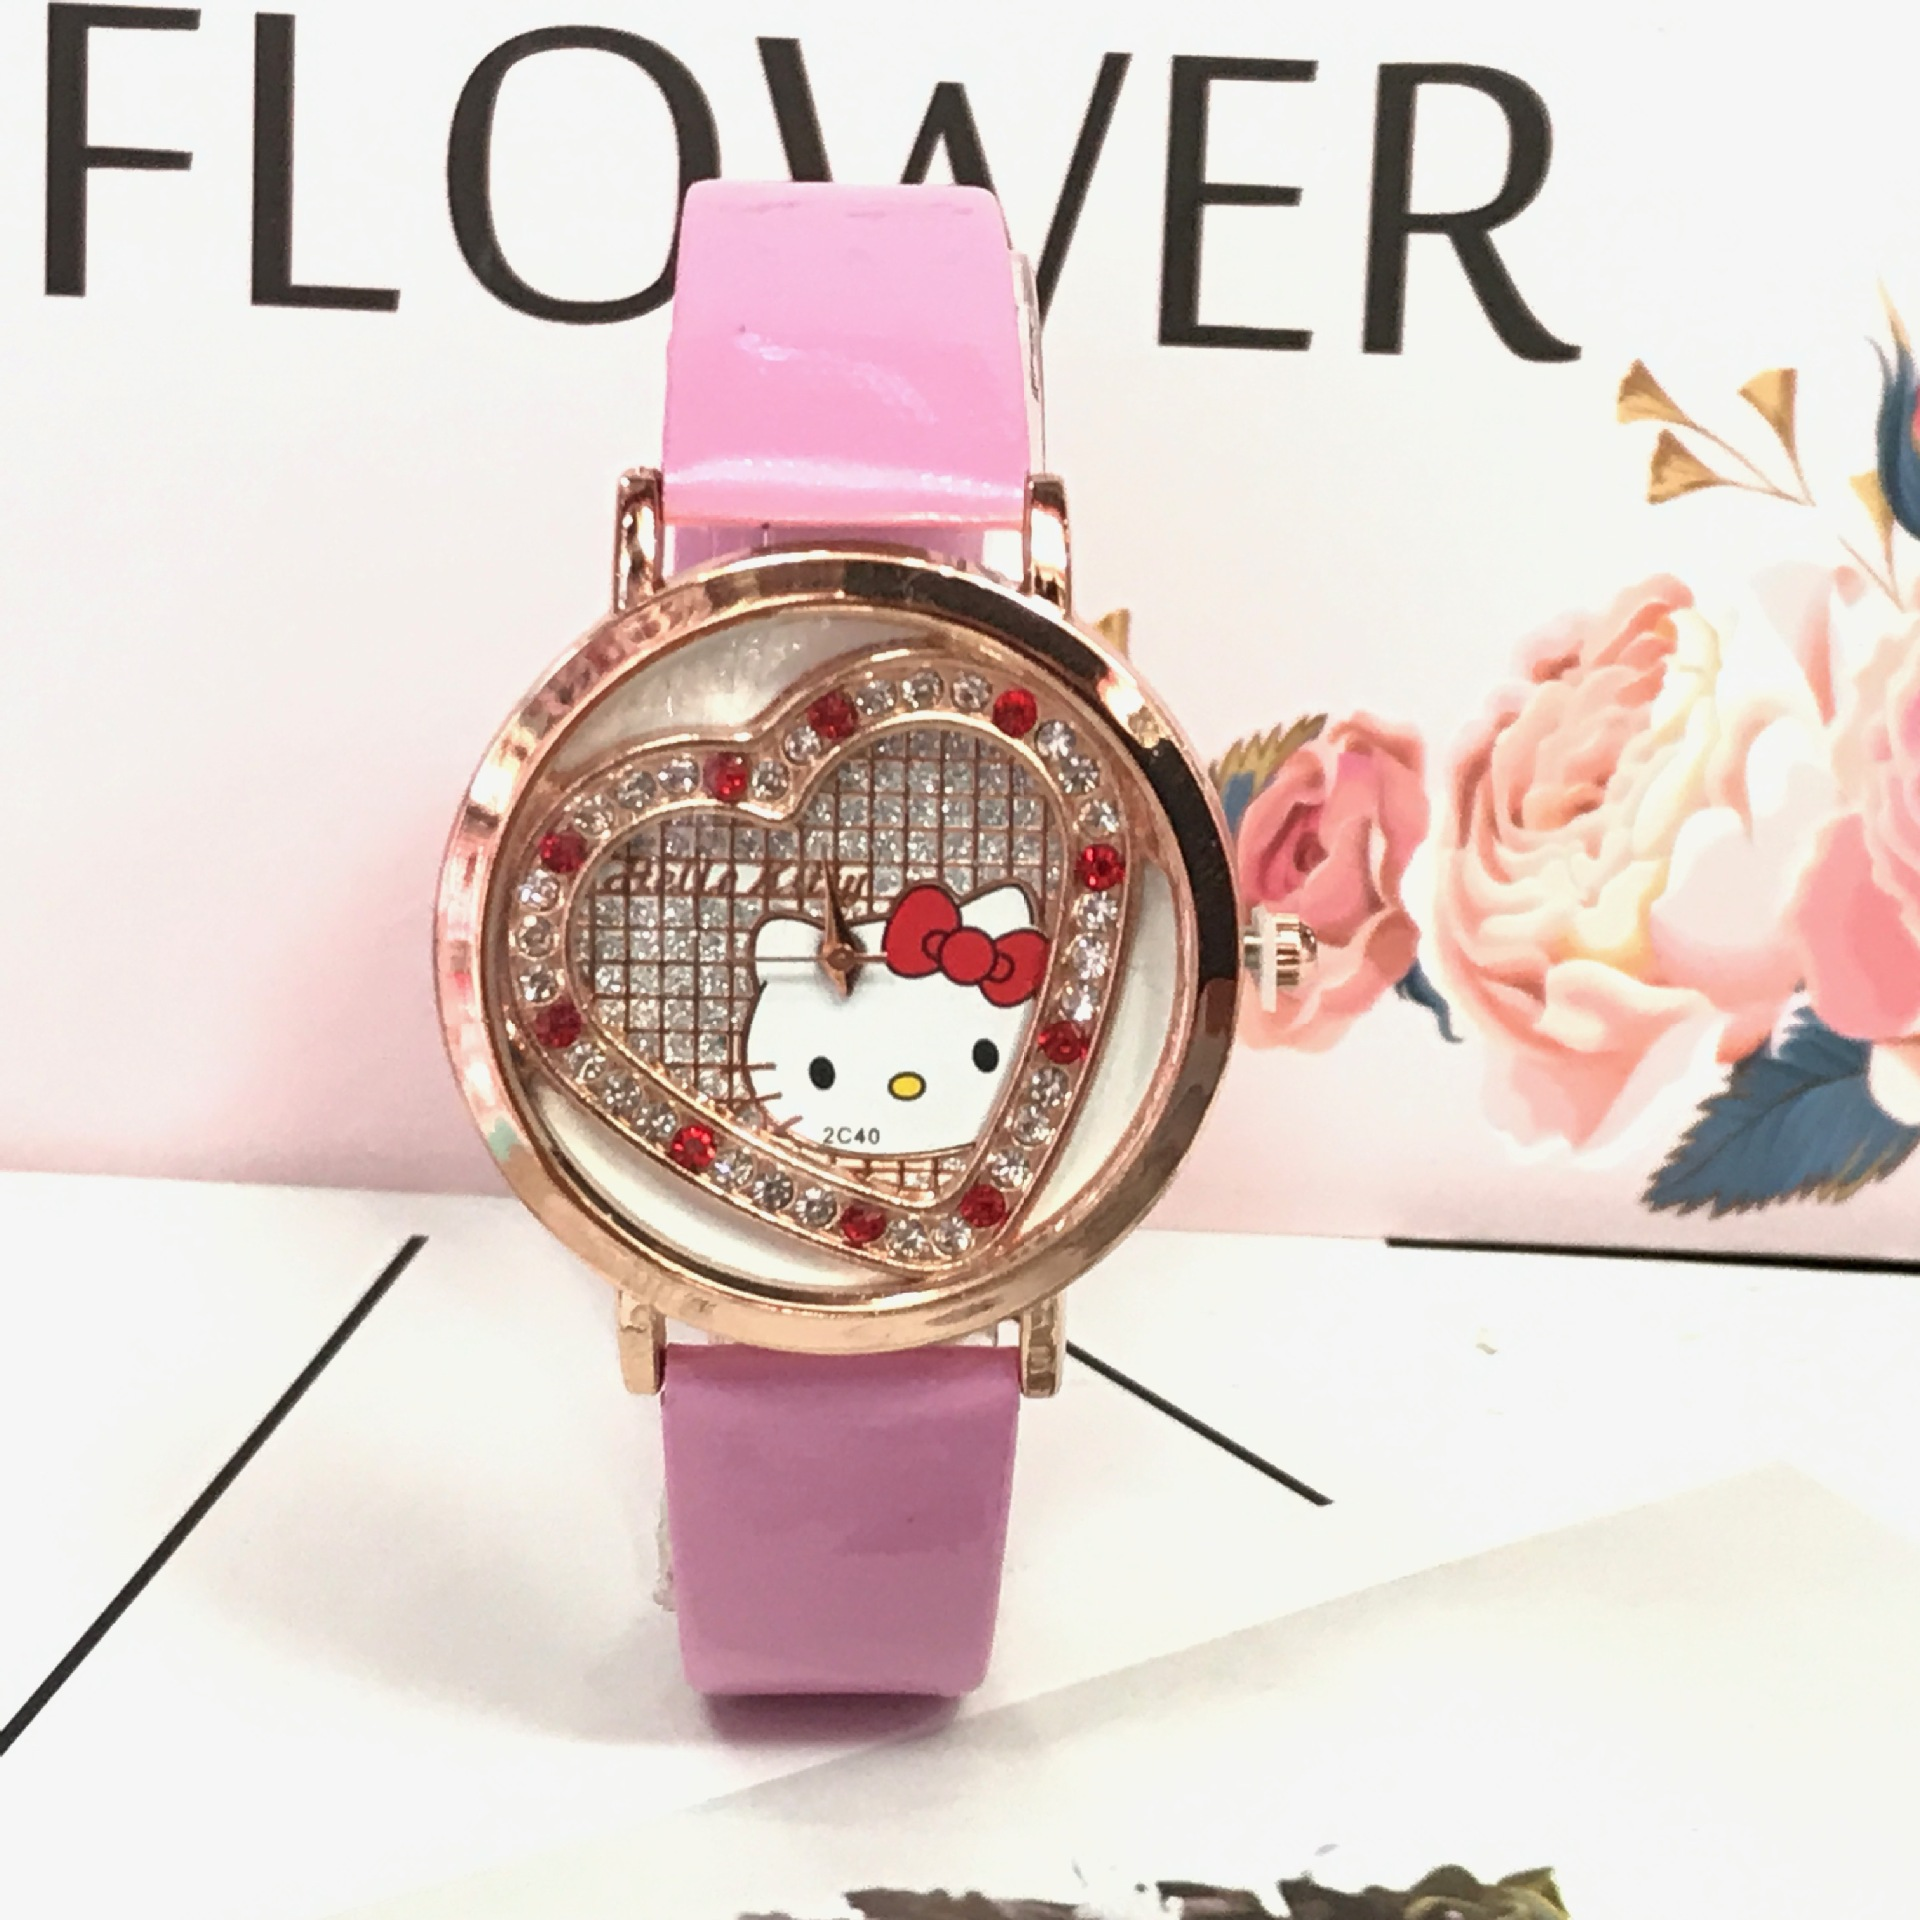 Drilled Watch Fashionable Cartoon Crystal Watch For Girls And Children Wristwatch Reloj De Estudiante